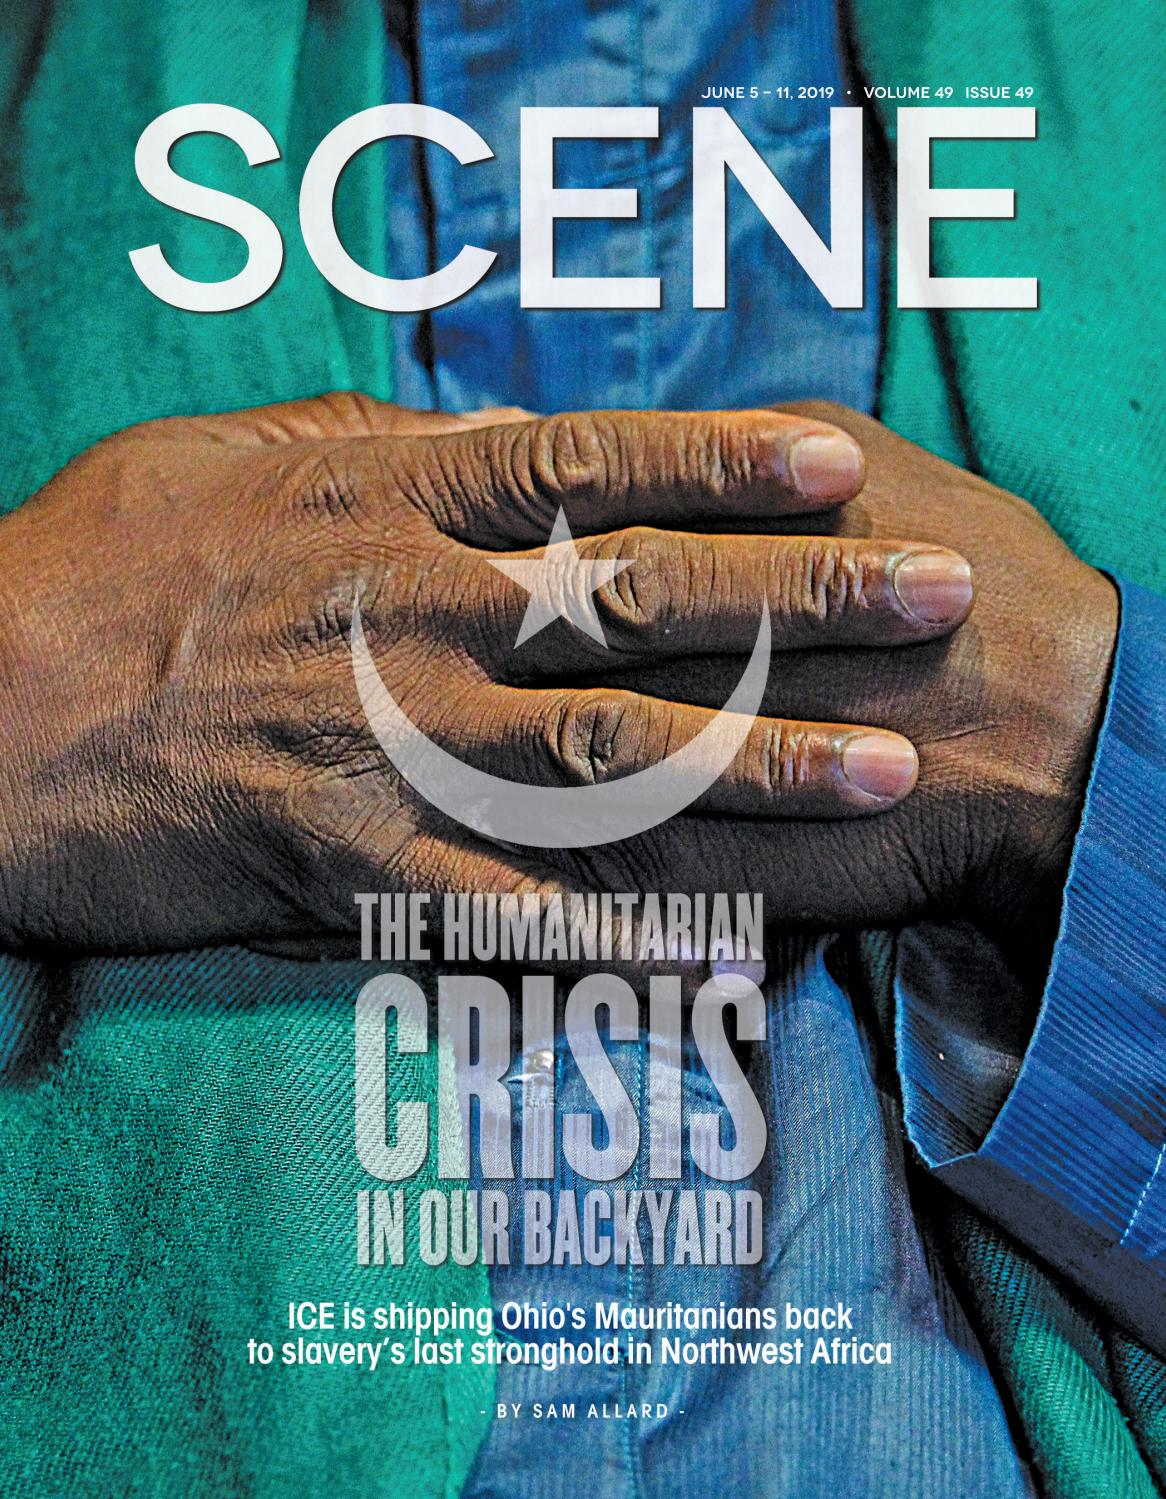 Scene June 5, 2019 by Euclid Media Group - issuu